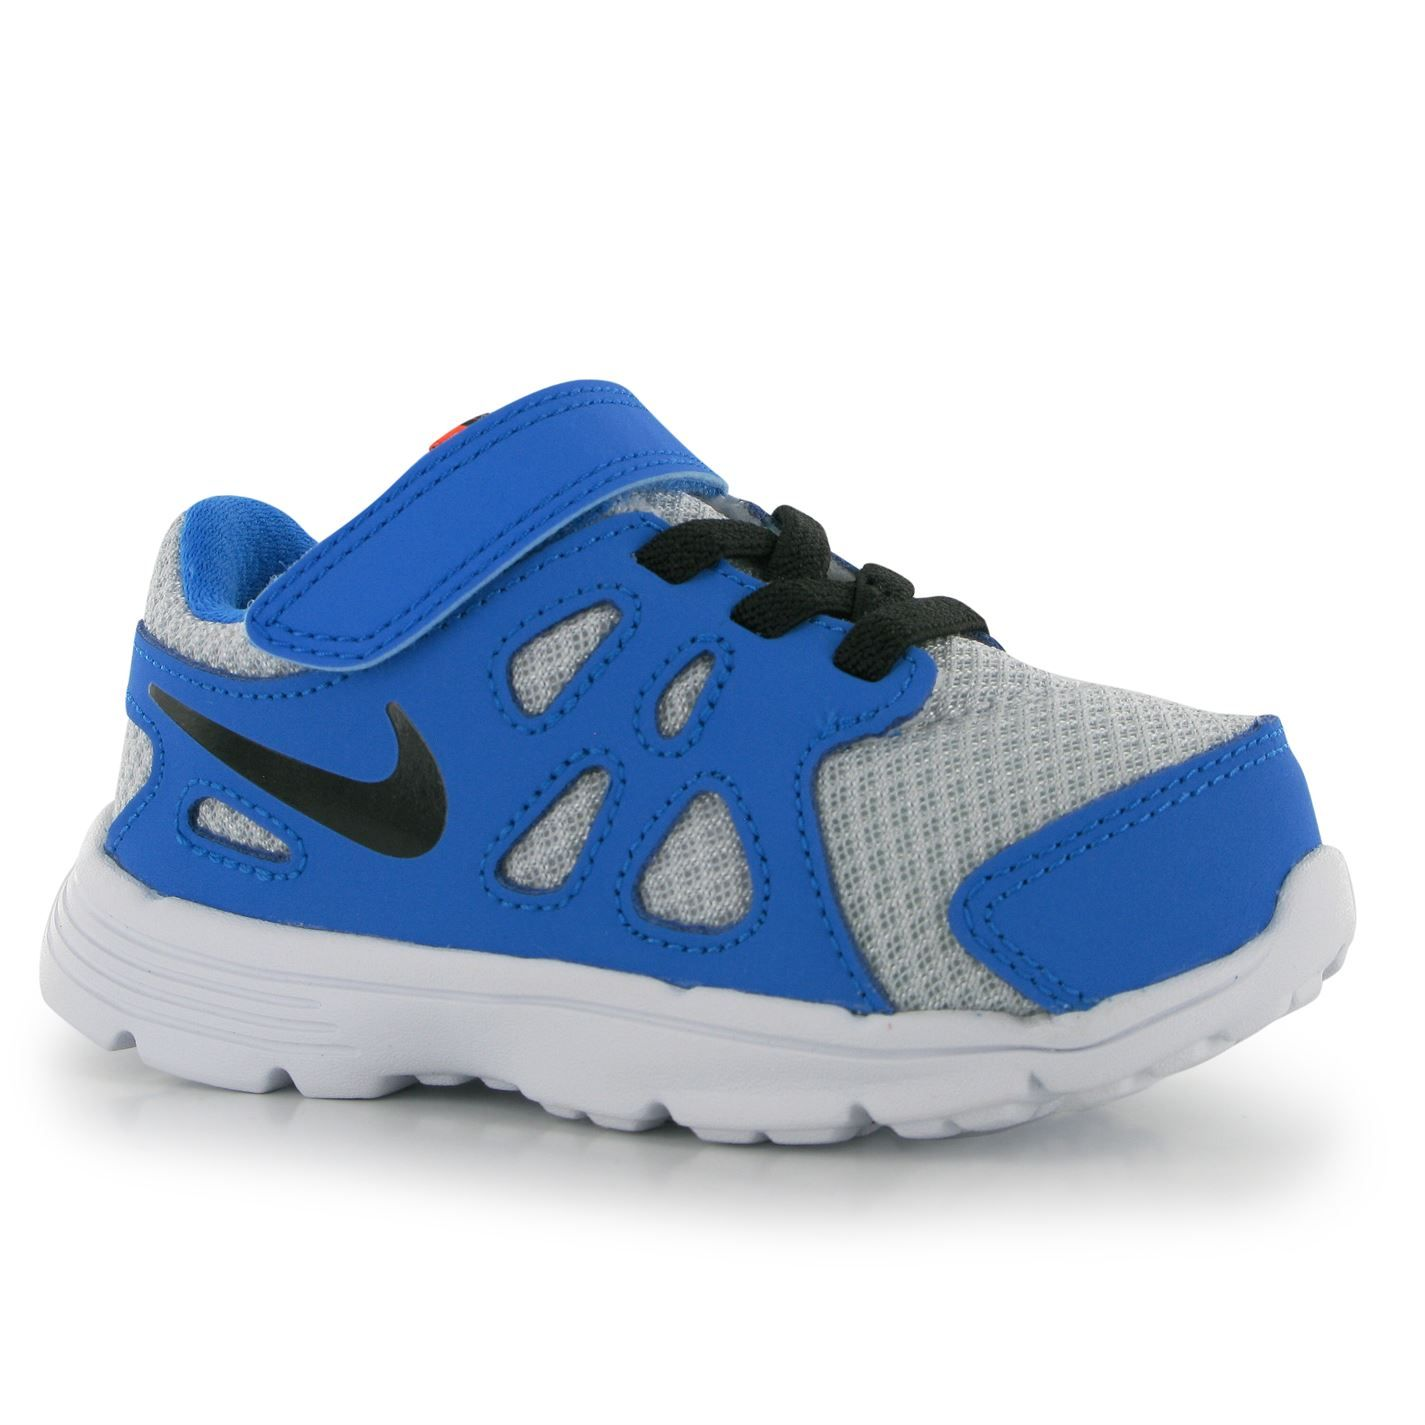 Nike | Nike Revolution 2 Infant Trainers | Kids Running Shoes